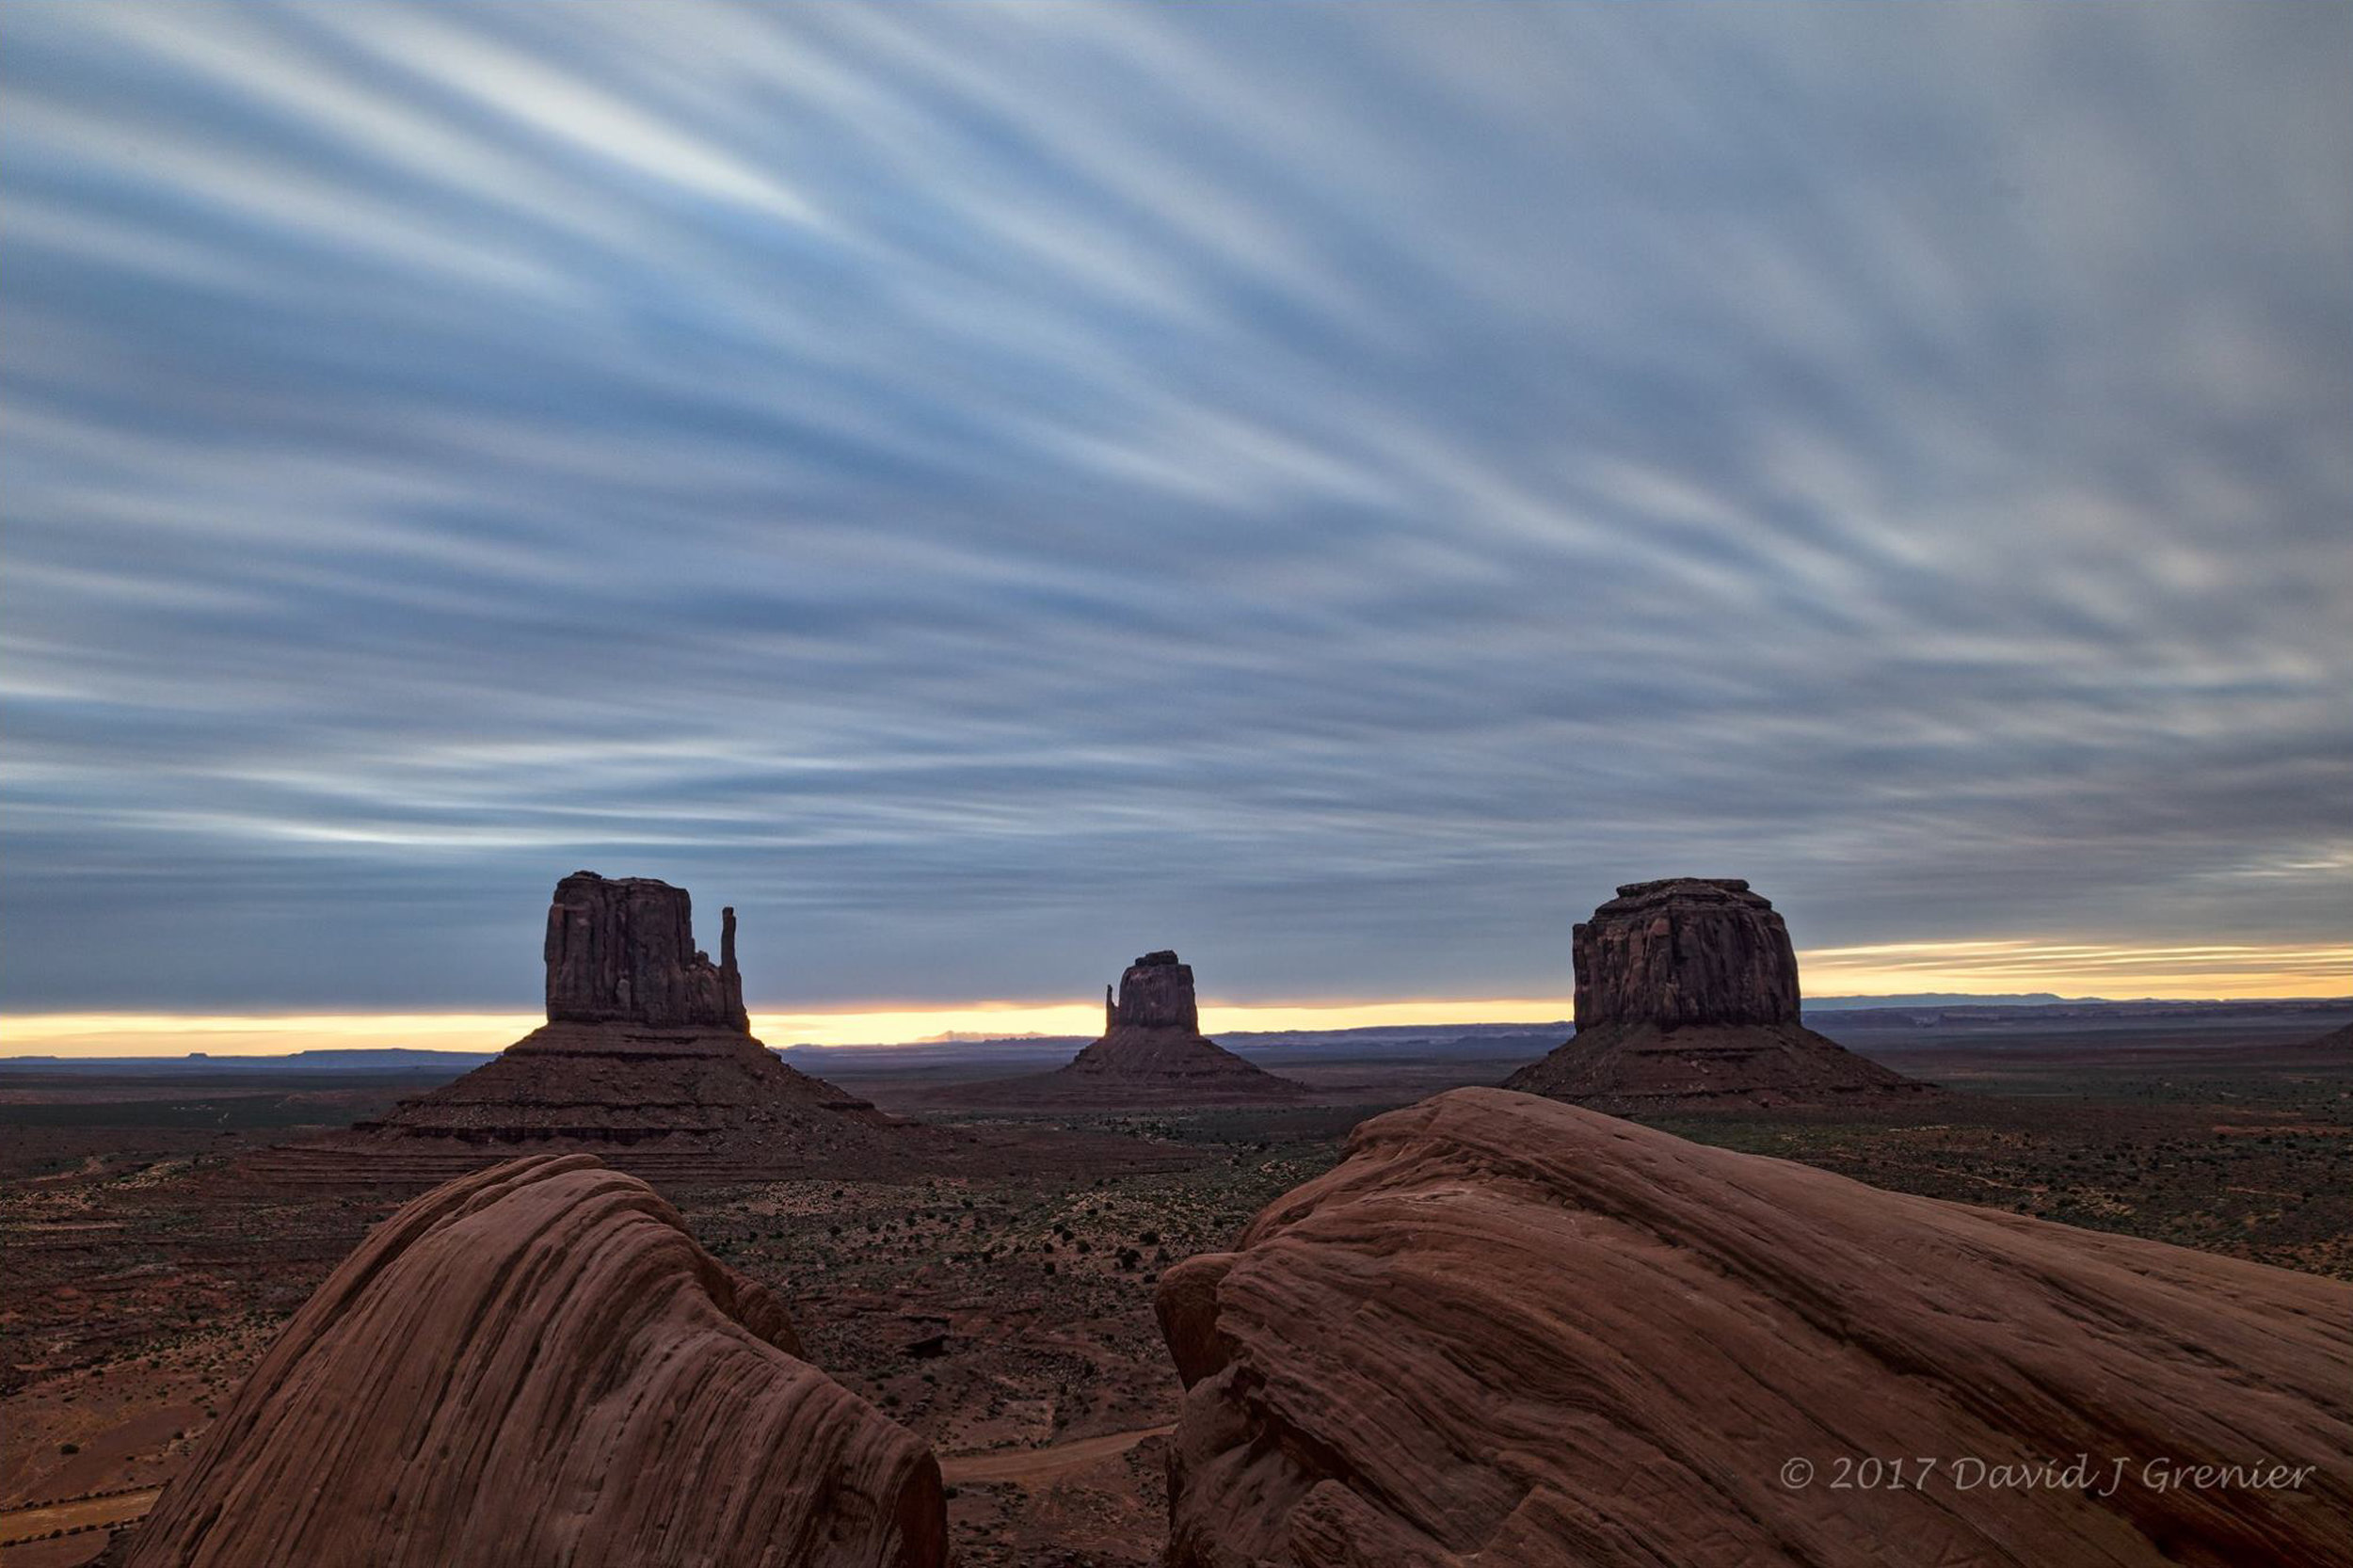 May 1, 2017, Monument Valley, AZ; exp. 121.0 secs (10 stop filter) @ f/11; 16-35mm lens @ 18mm; ISO 160